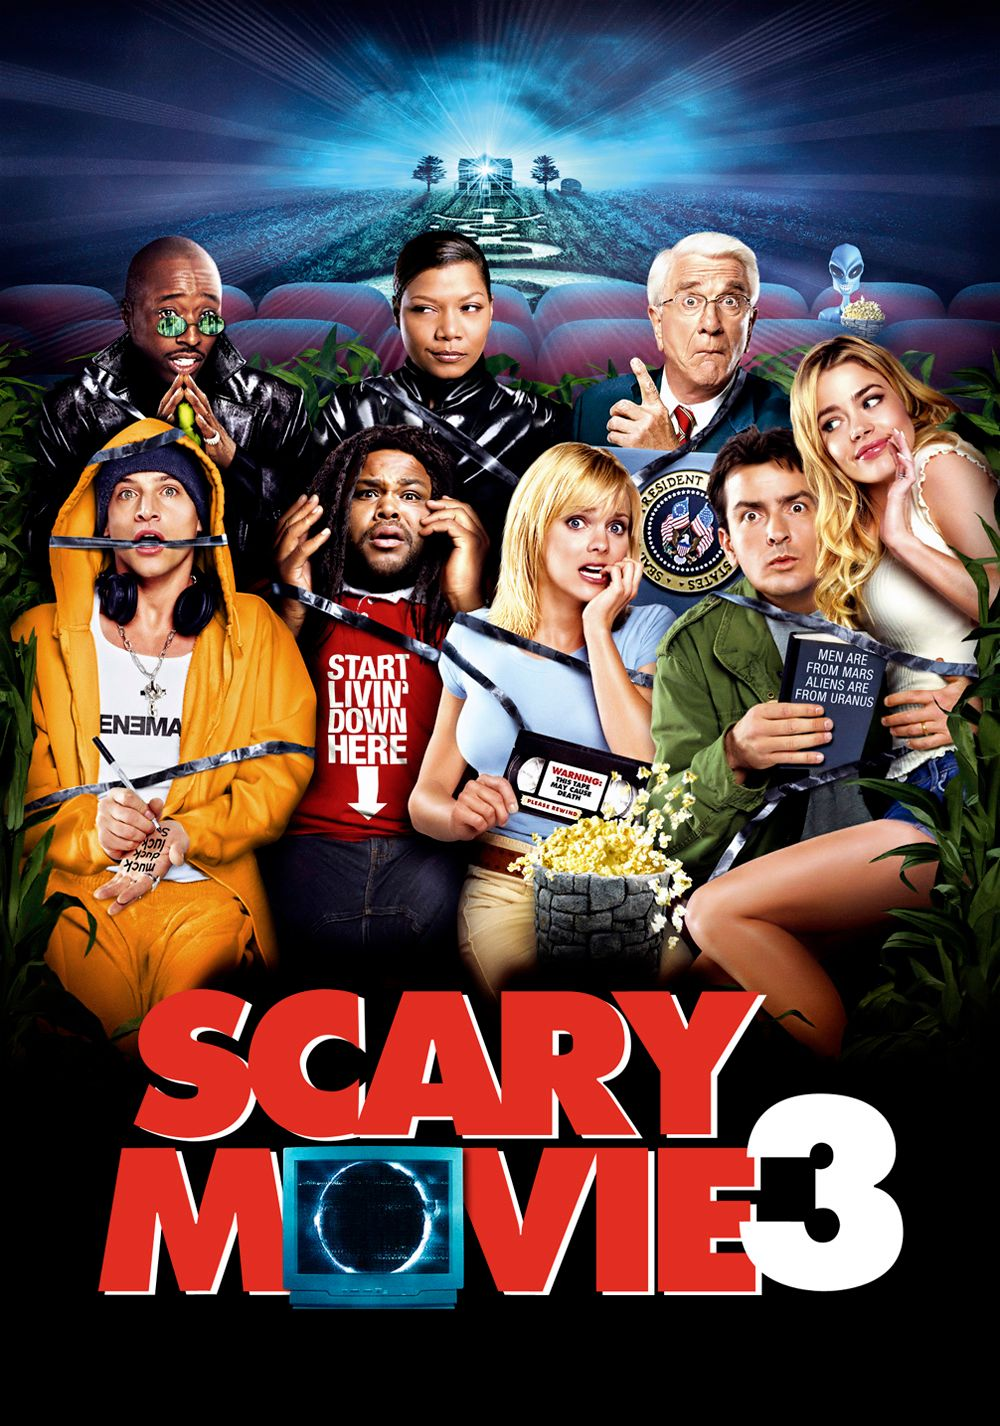 scary movie 3 ganzer film